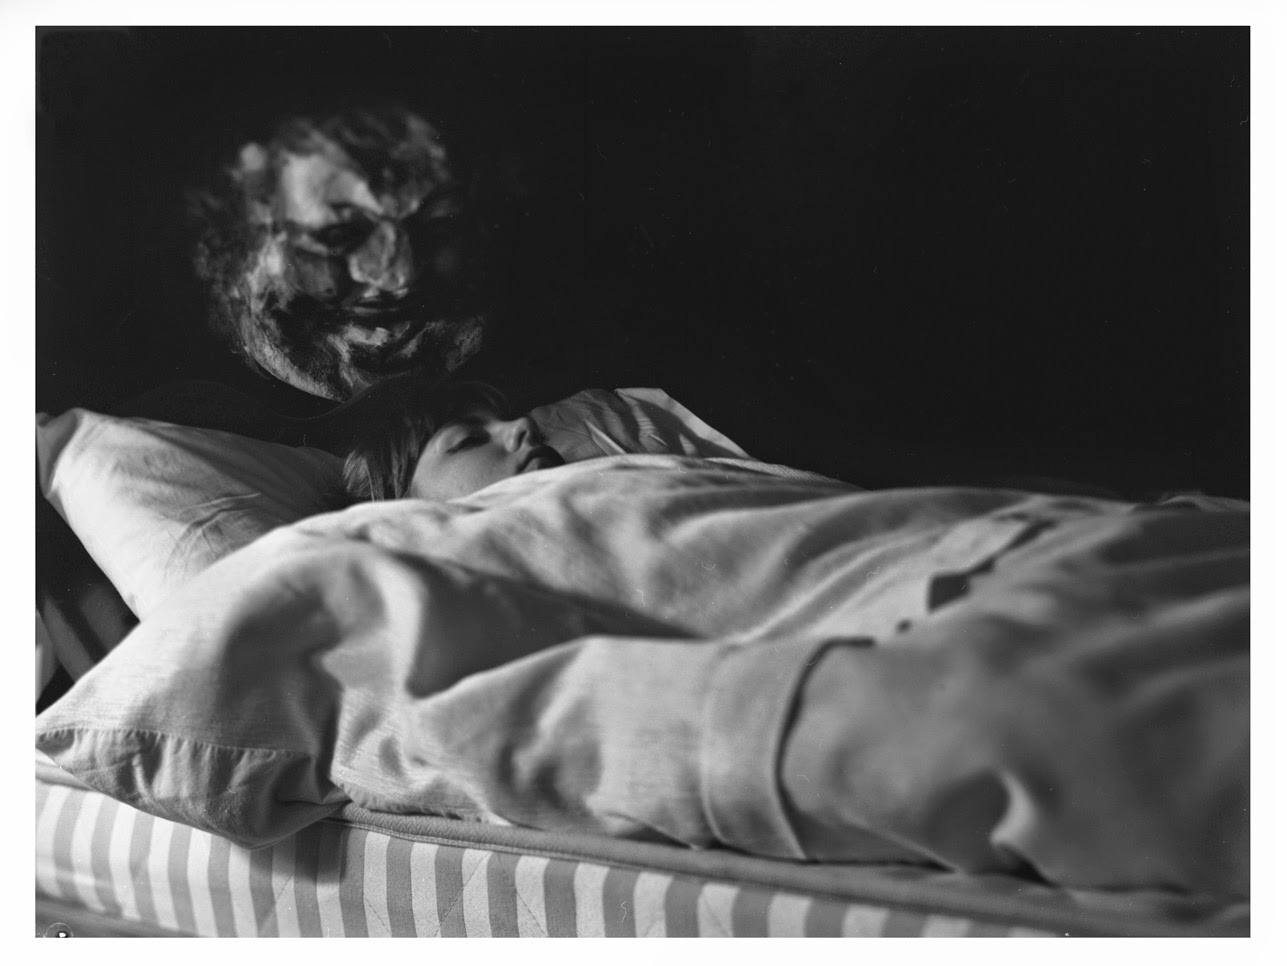 Man With Sleep Paralysis Captures Shadow Person Apparition